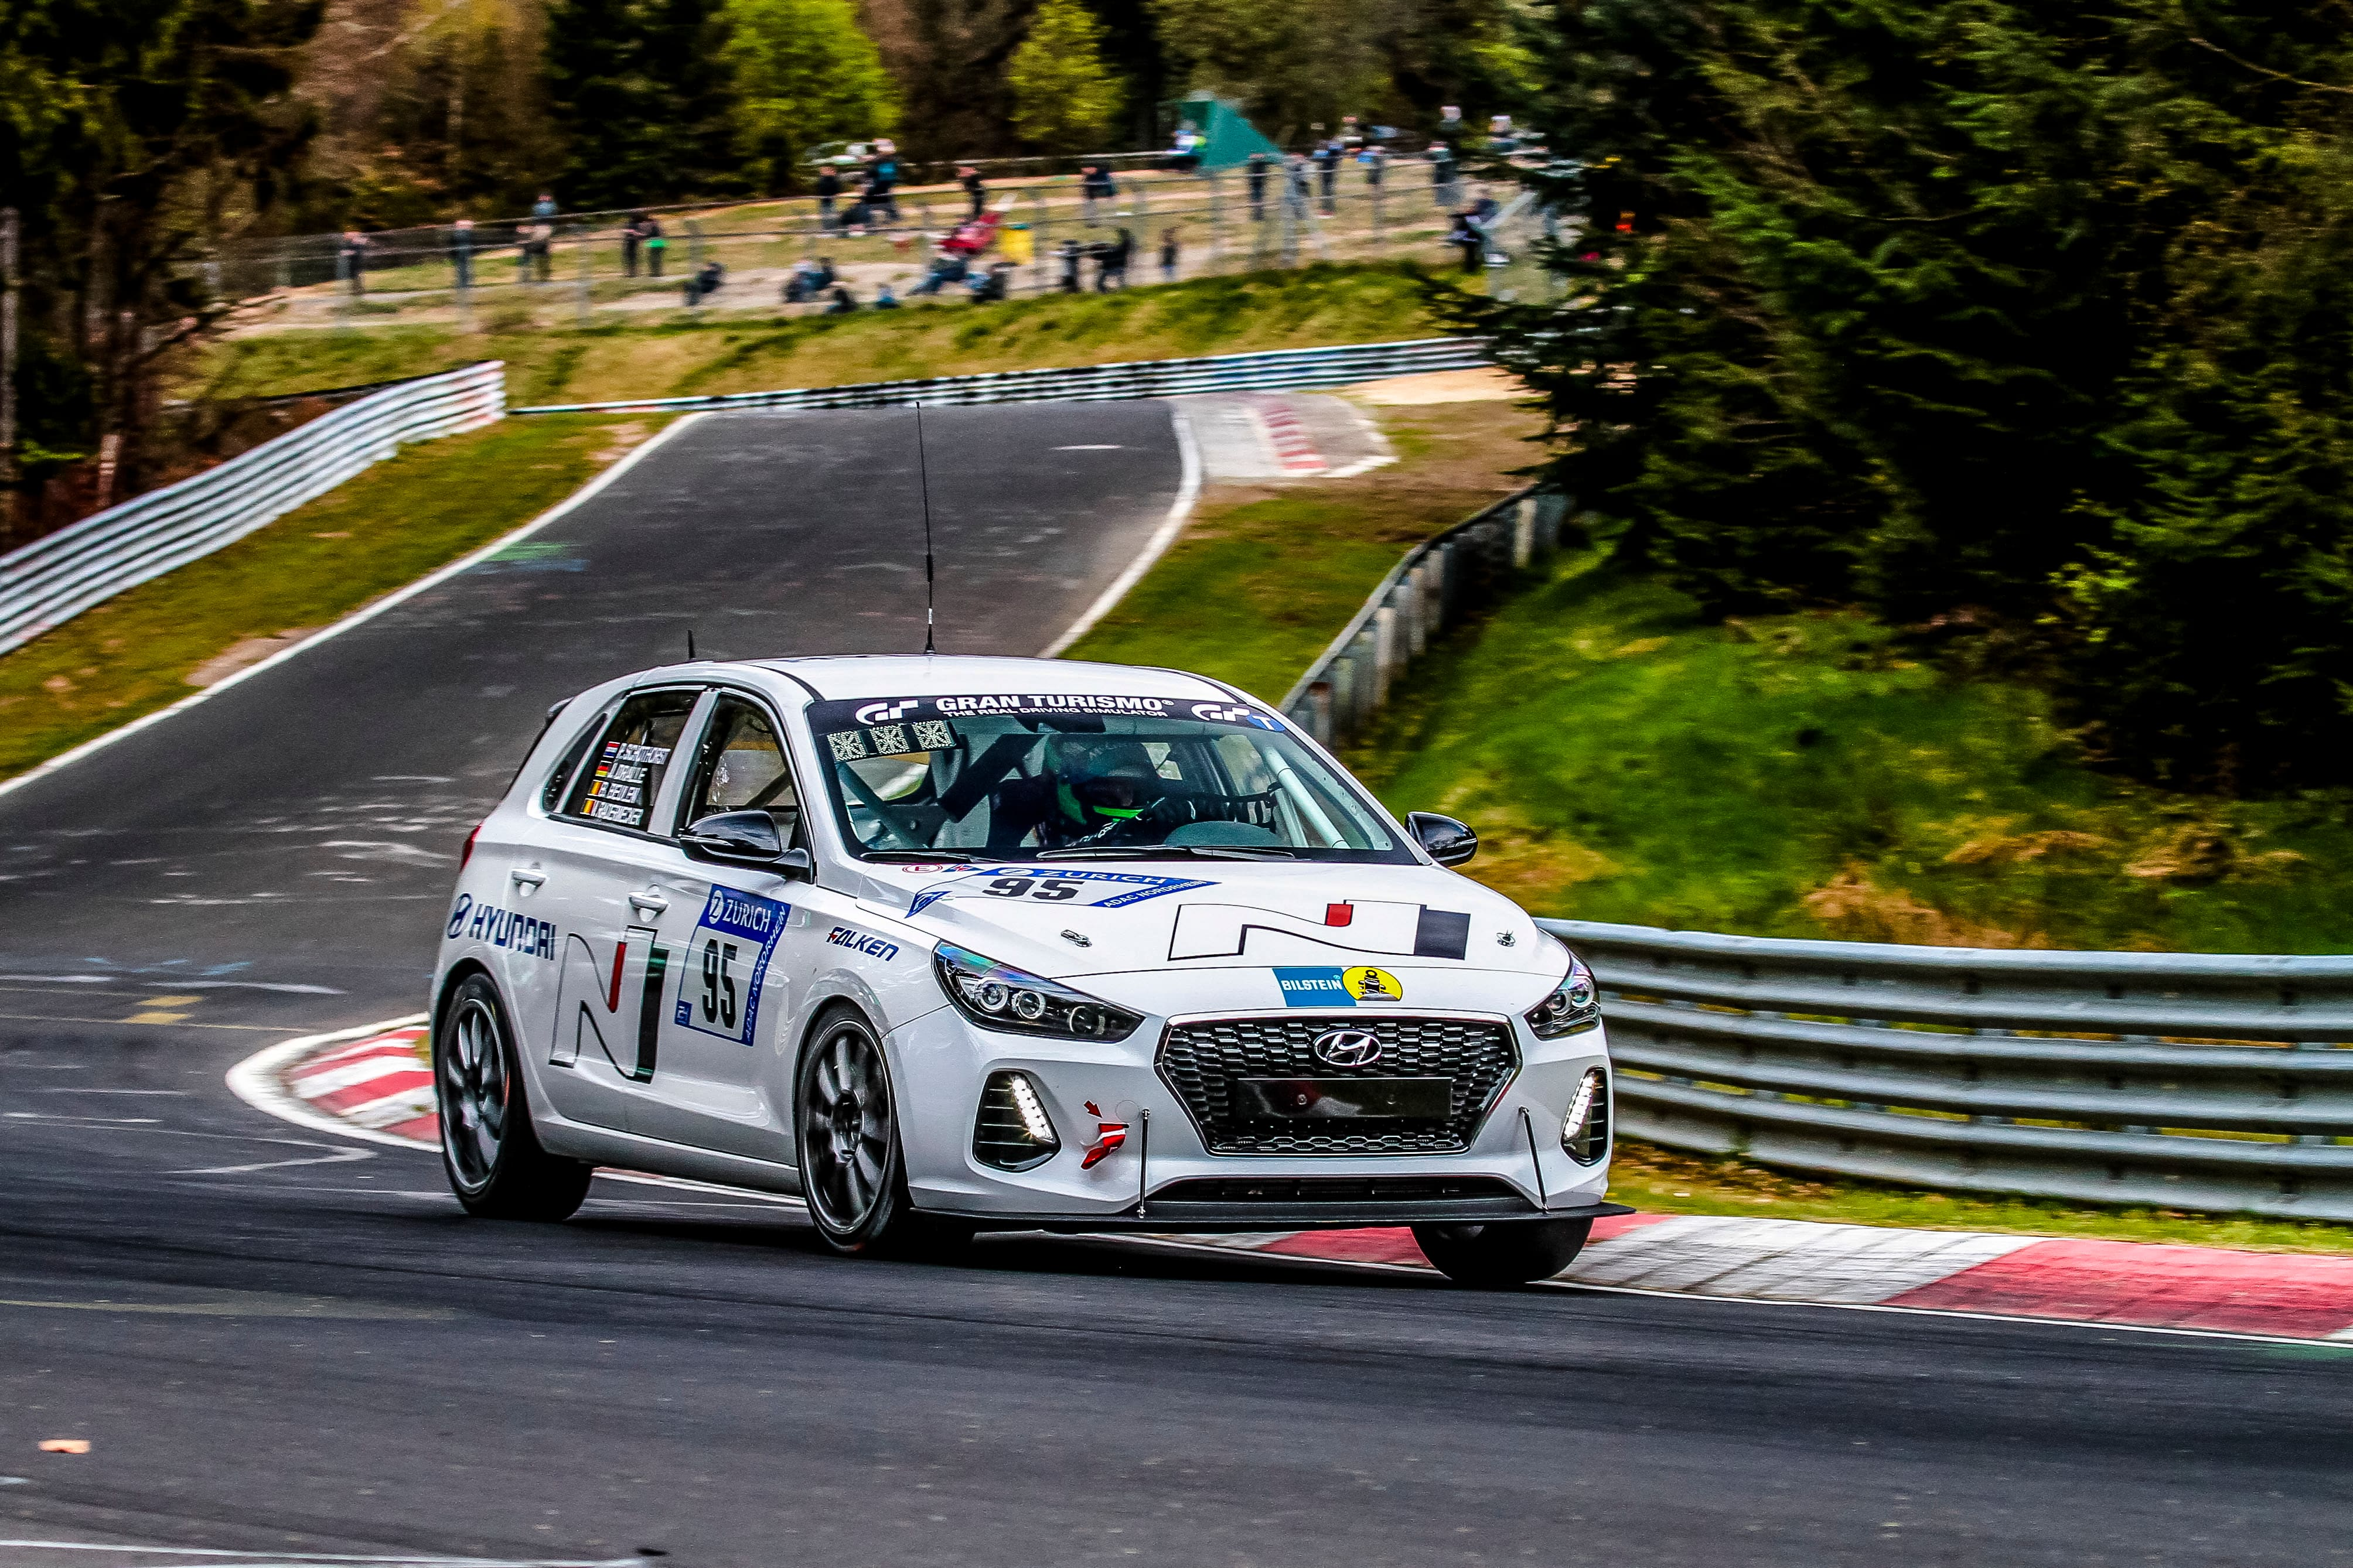 Final Test for Hyundai i30 N During the Nürburgring 24-Hour Race